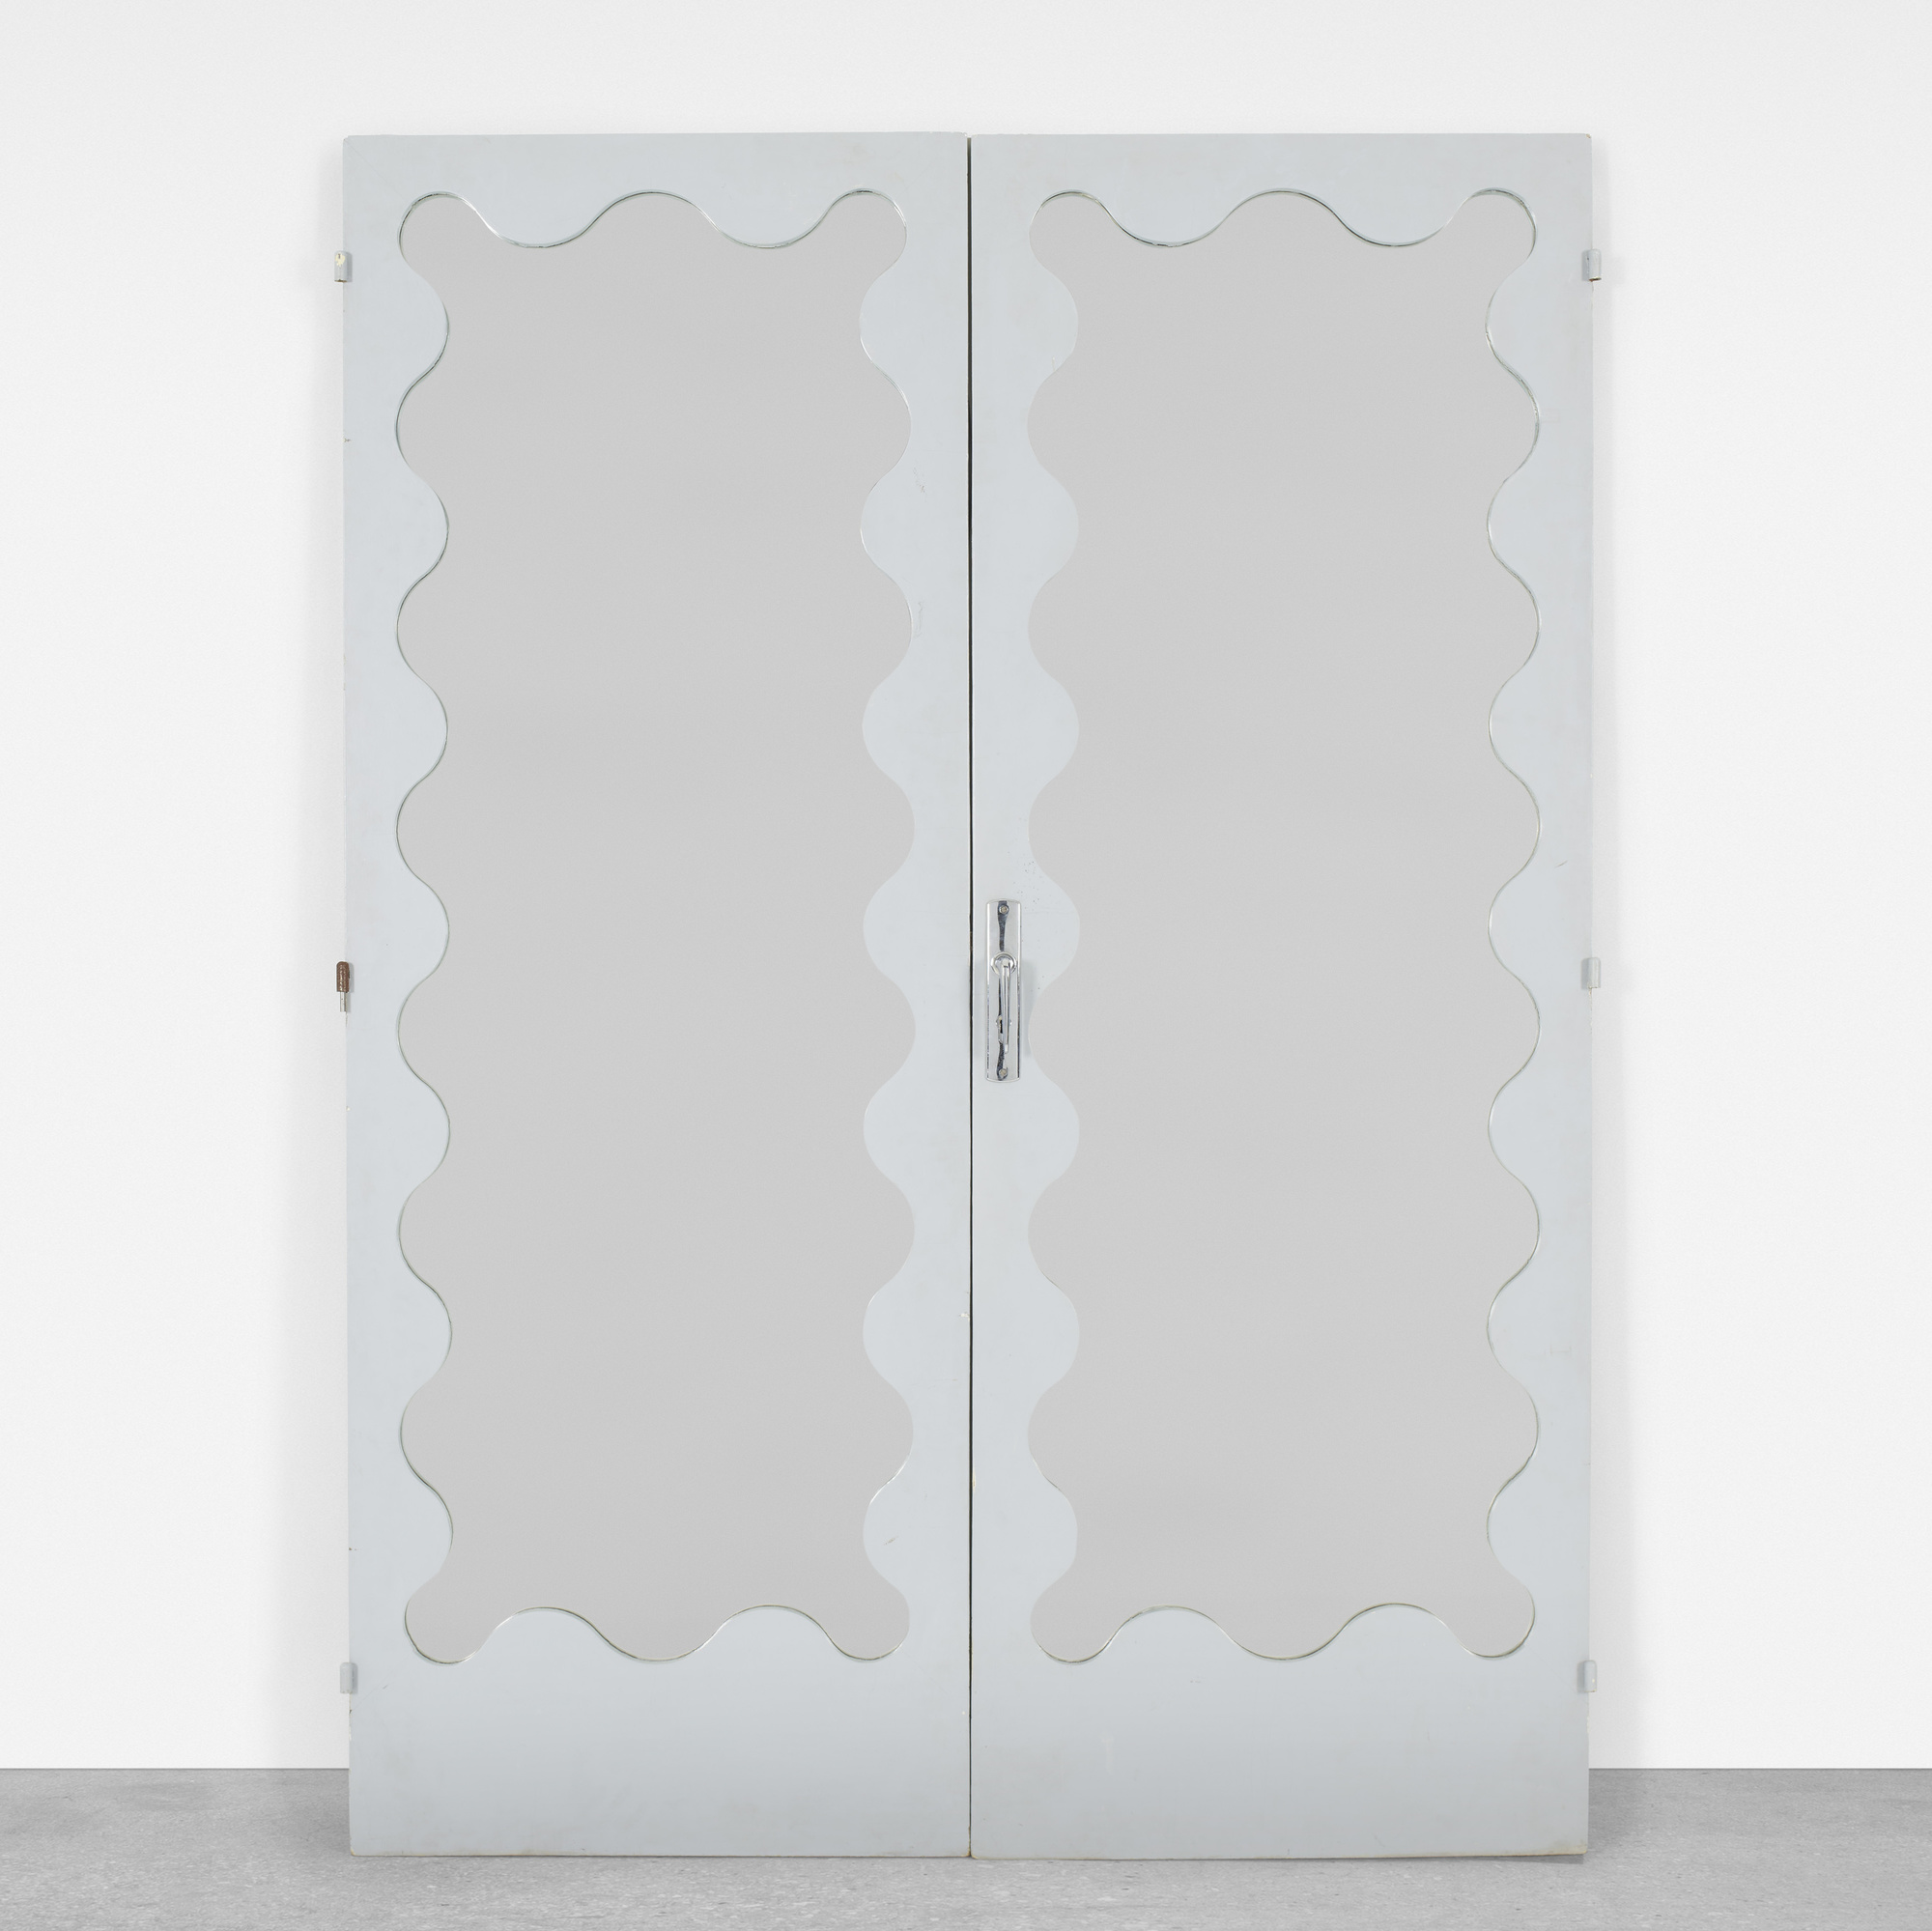 142: Jean Royère / doors, pair (1 of 2)